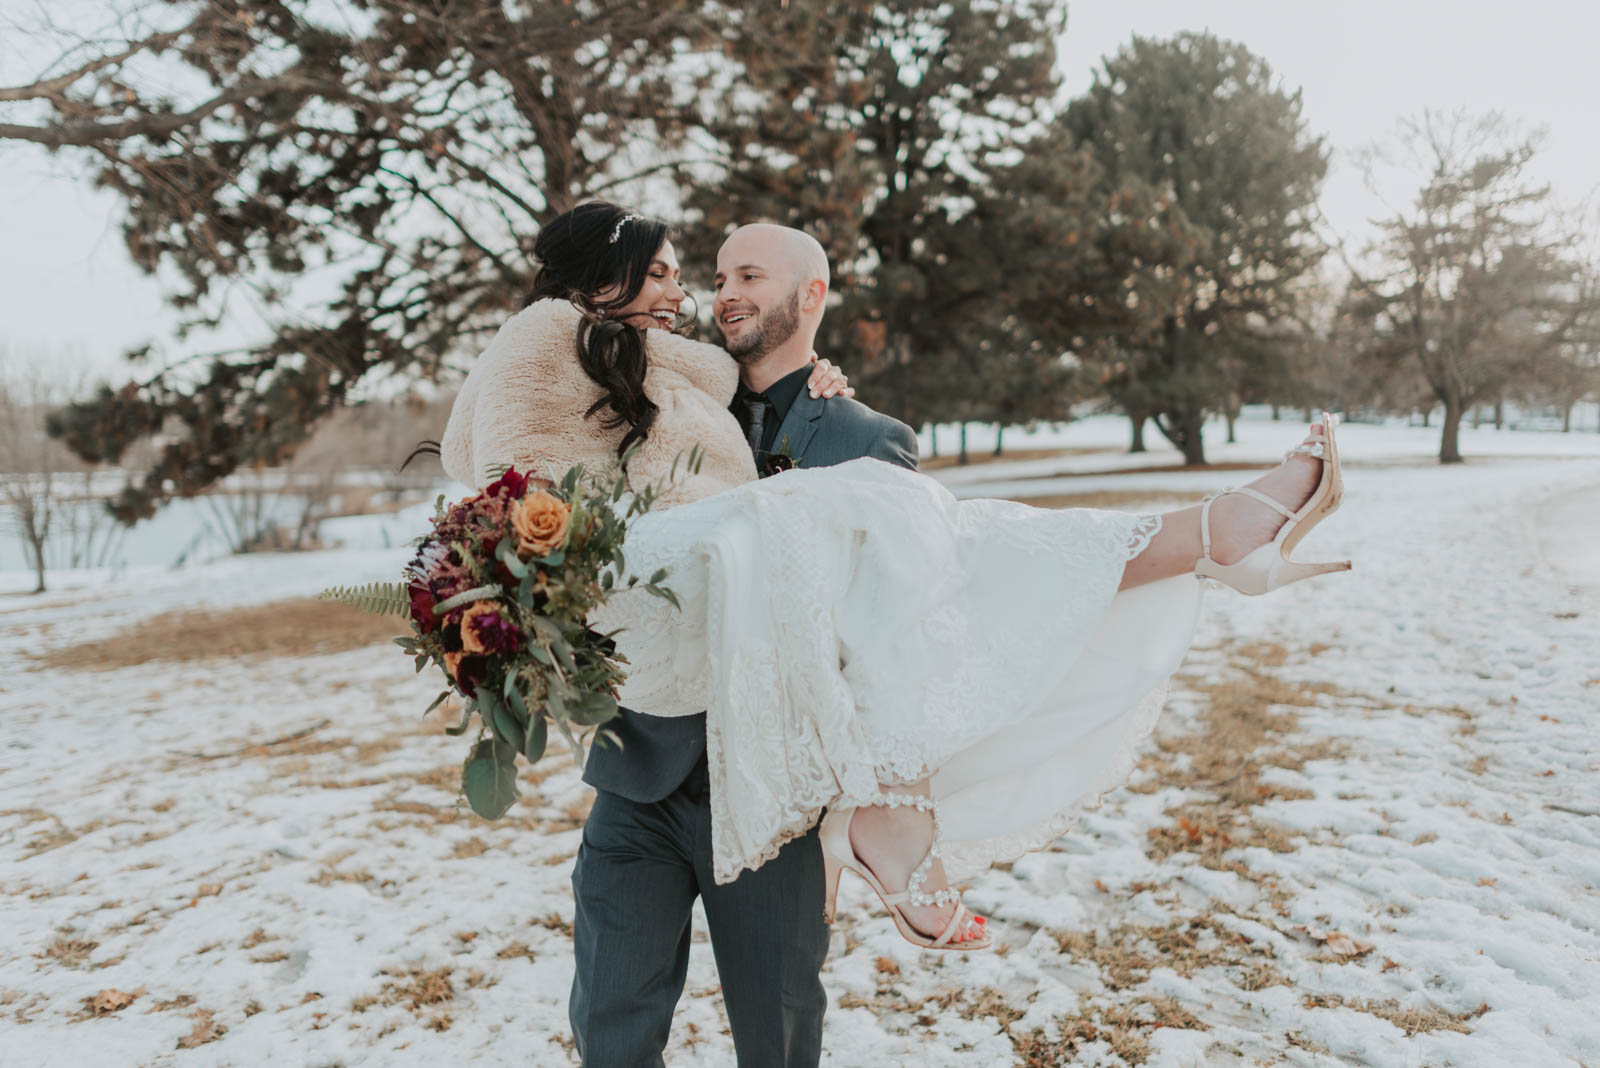 bride and groom couples photos in the snow at wedding in omaha, nebraska